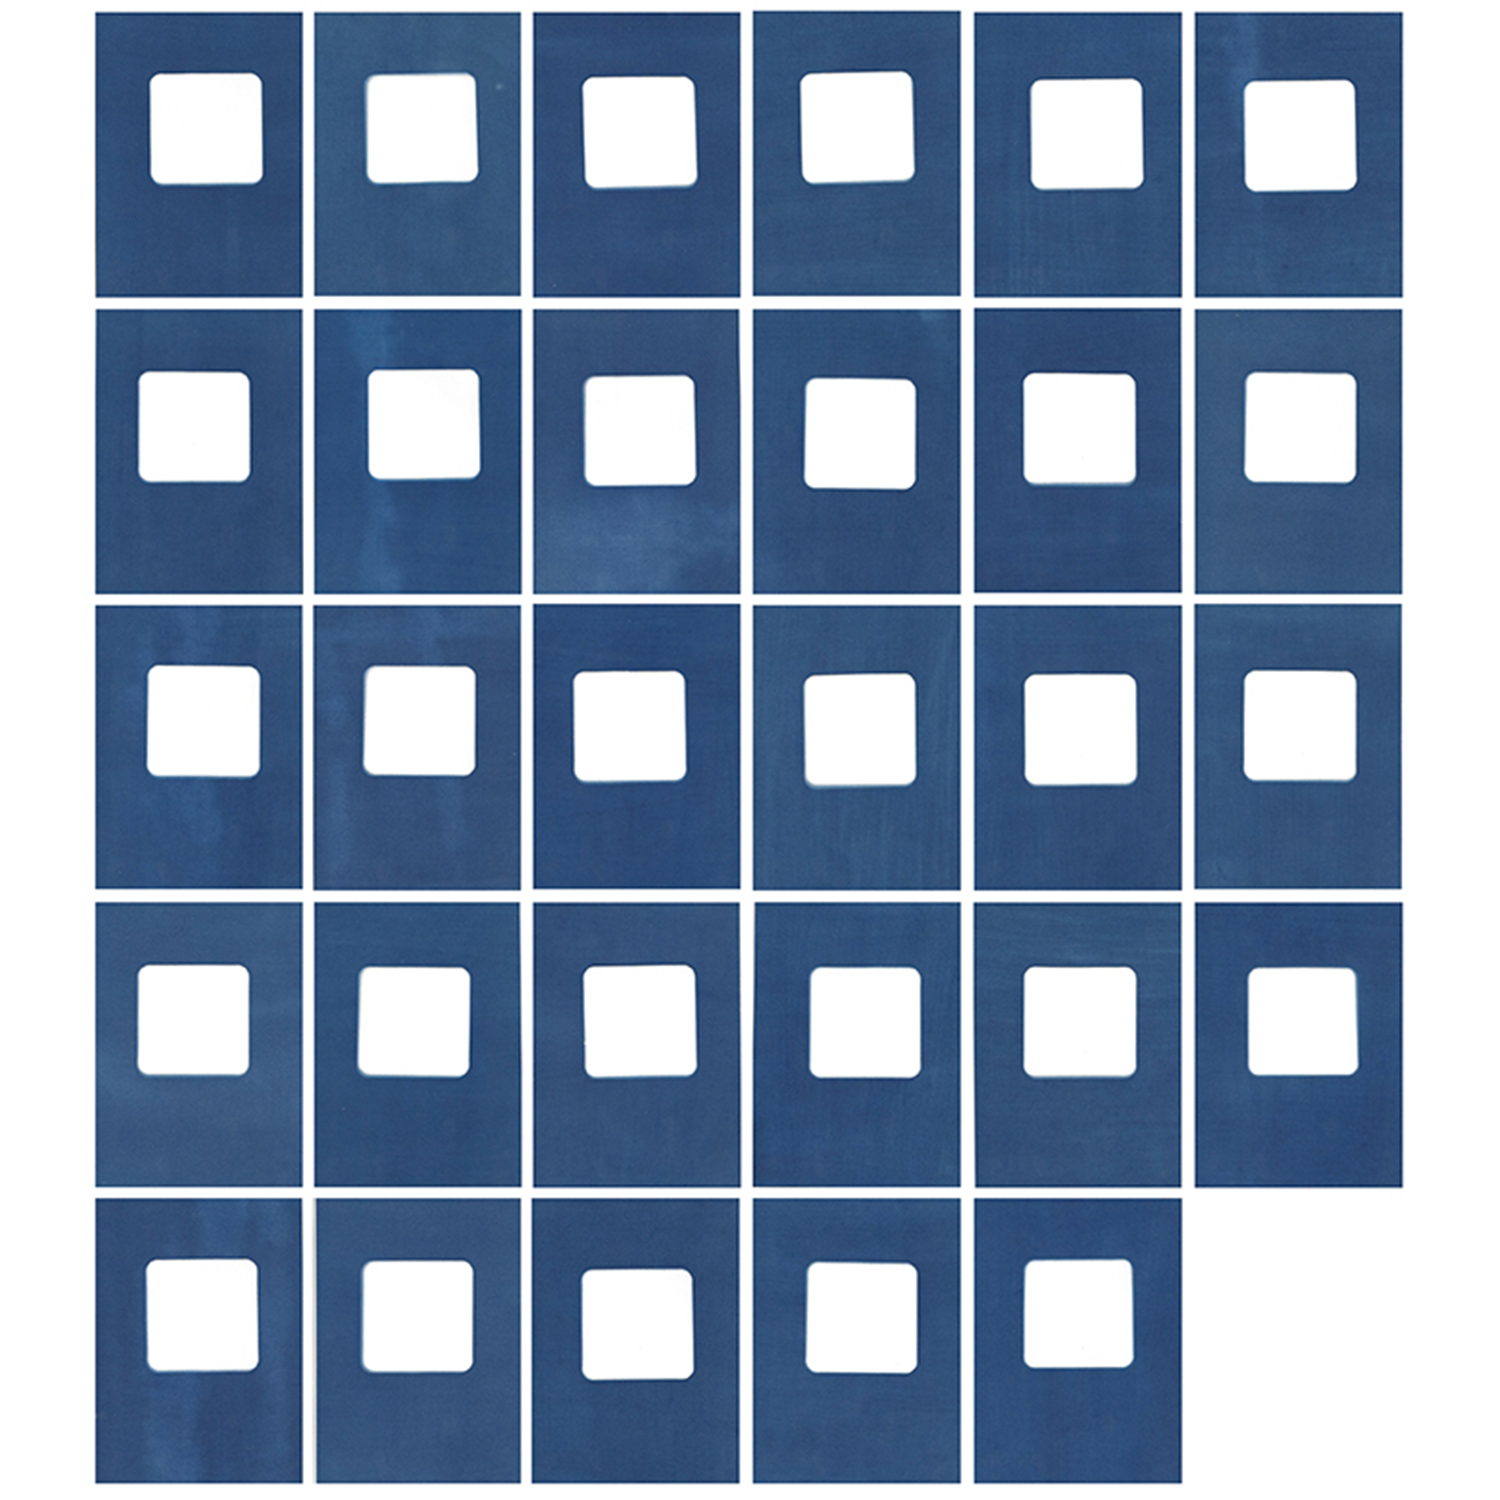 Sarah Irvin, Cyanotype Archive: Matching Game, 2019, Cyanotype, 49 x 44 inches